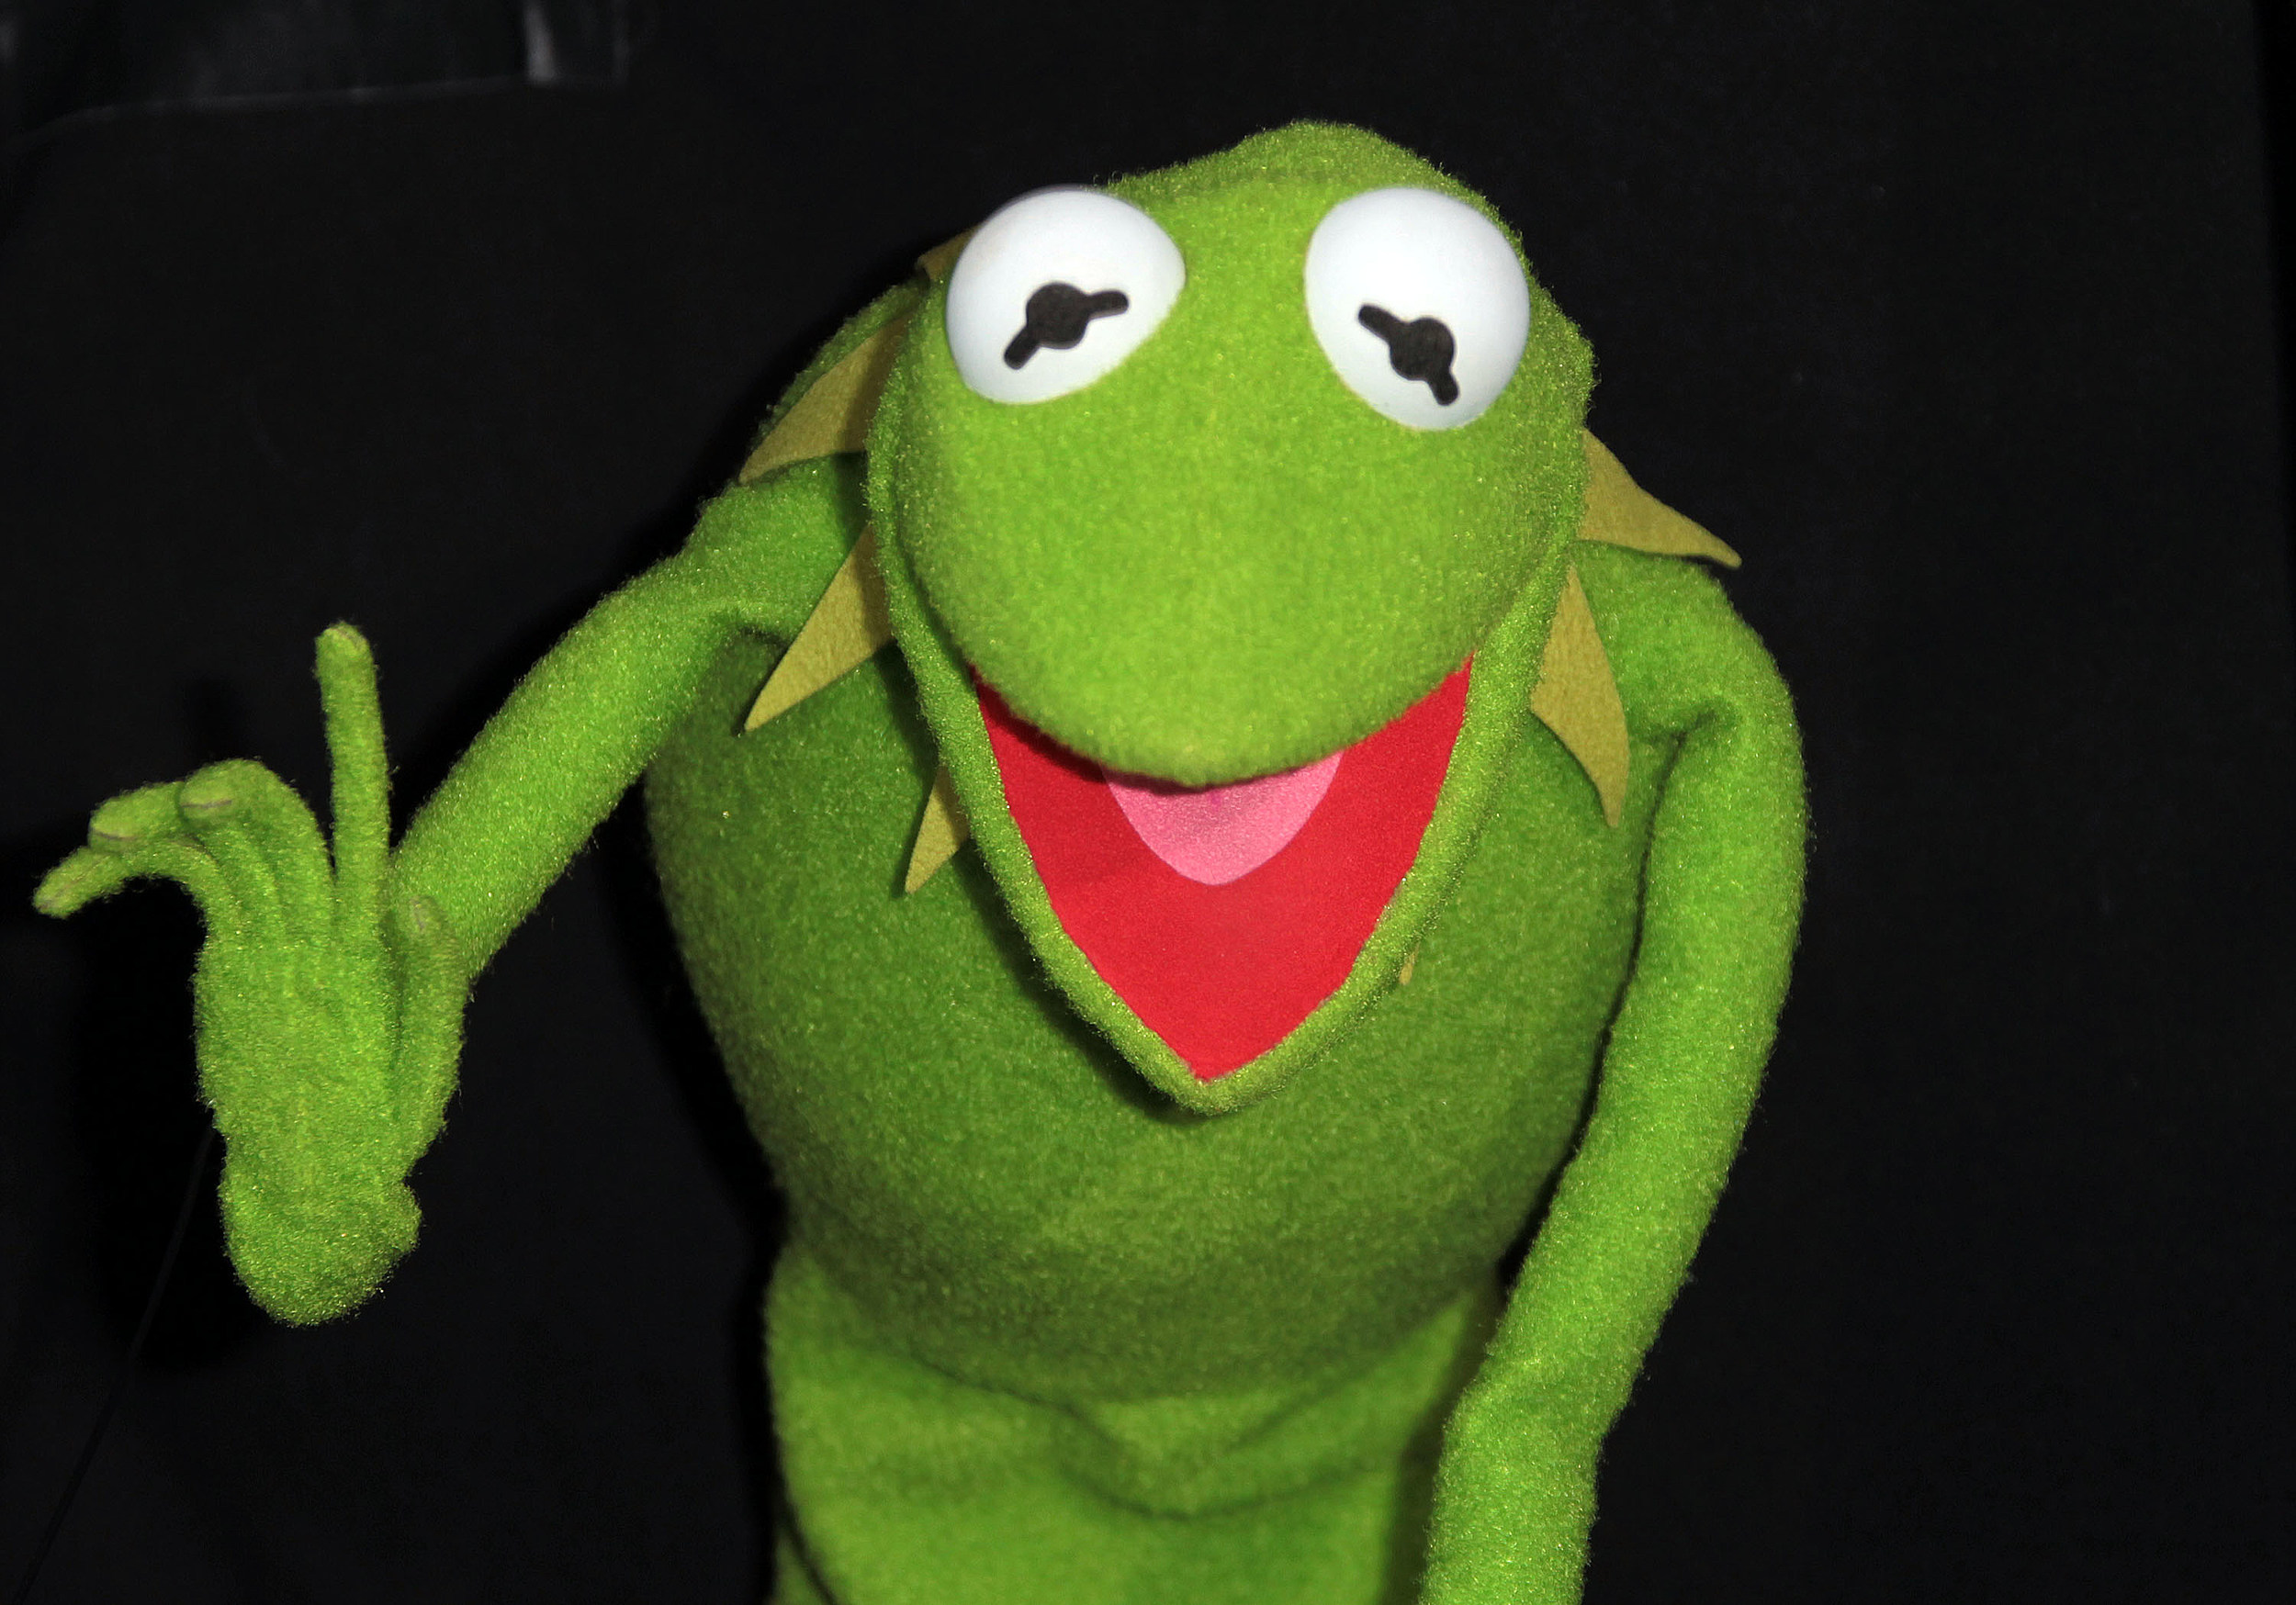 Real Life Kermit The Frog Discovered In Costa Rica - Real life kermit the frog discovered in costa rica